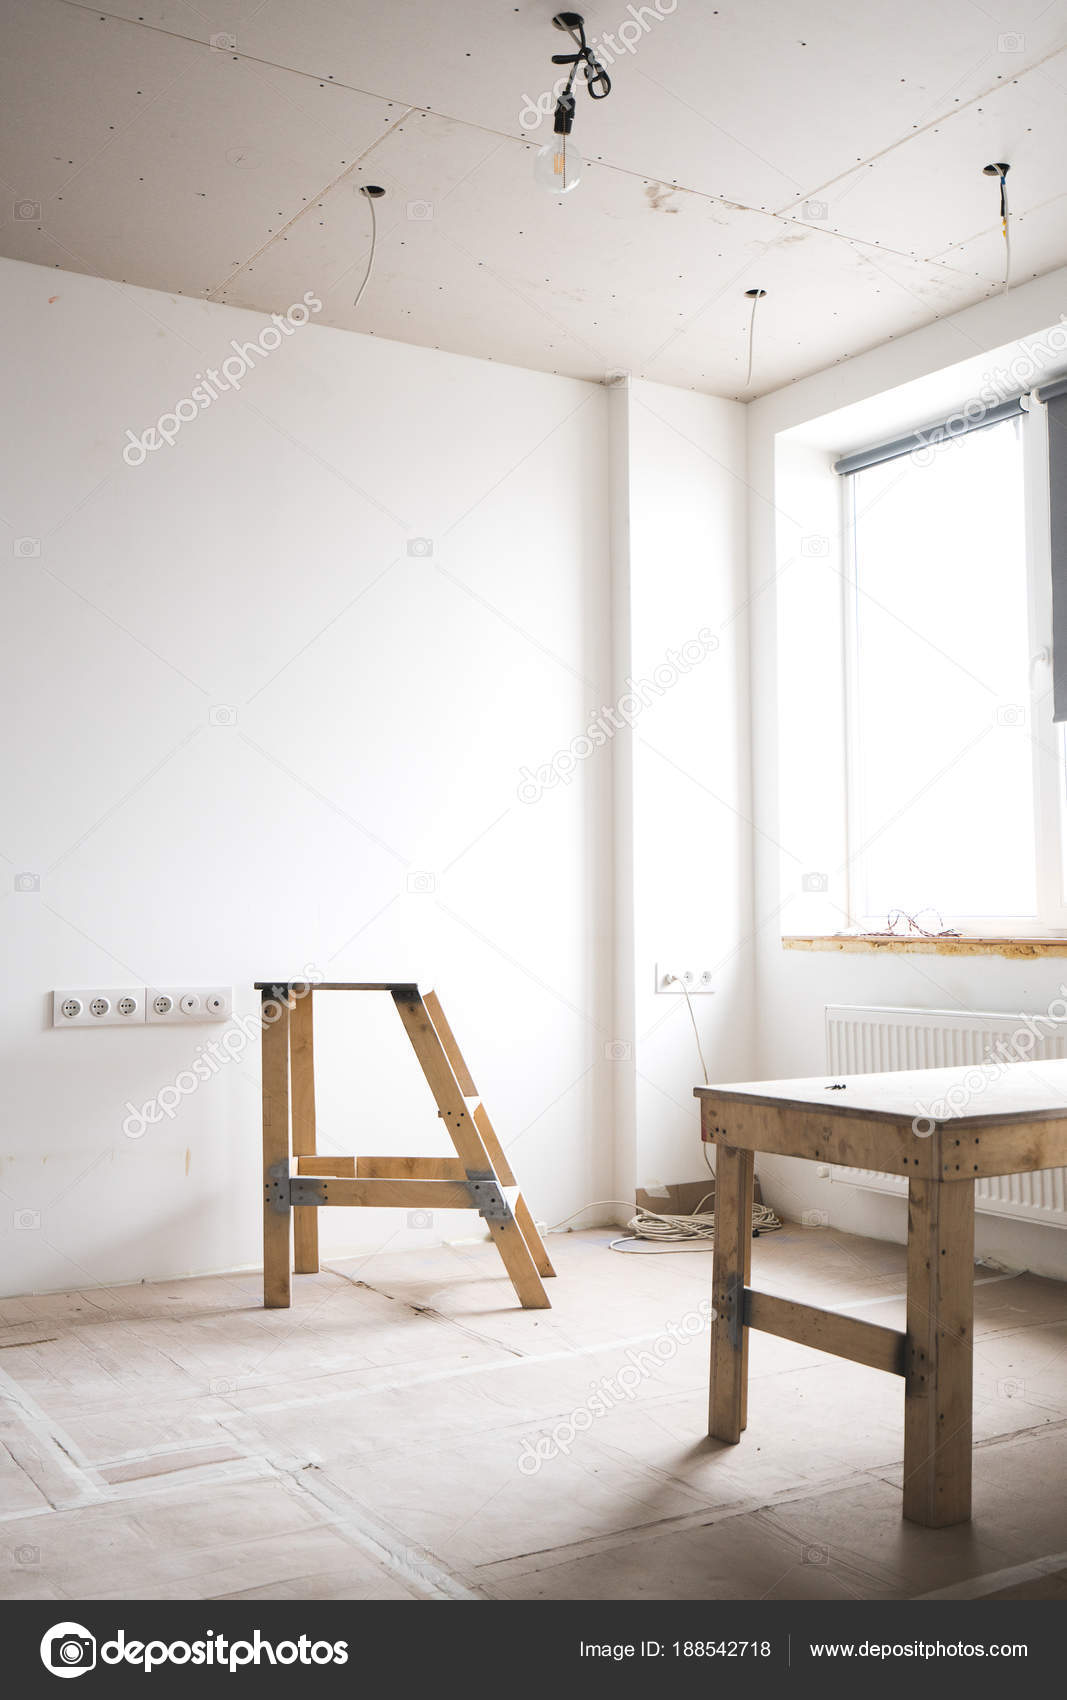 hight resolution of two wooden ladders in a white interior bright room with fresh plastered walls wiring and working with electricity in the house photo by shuterdima